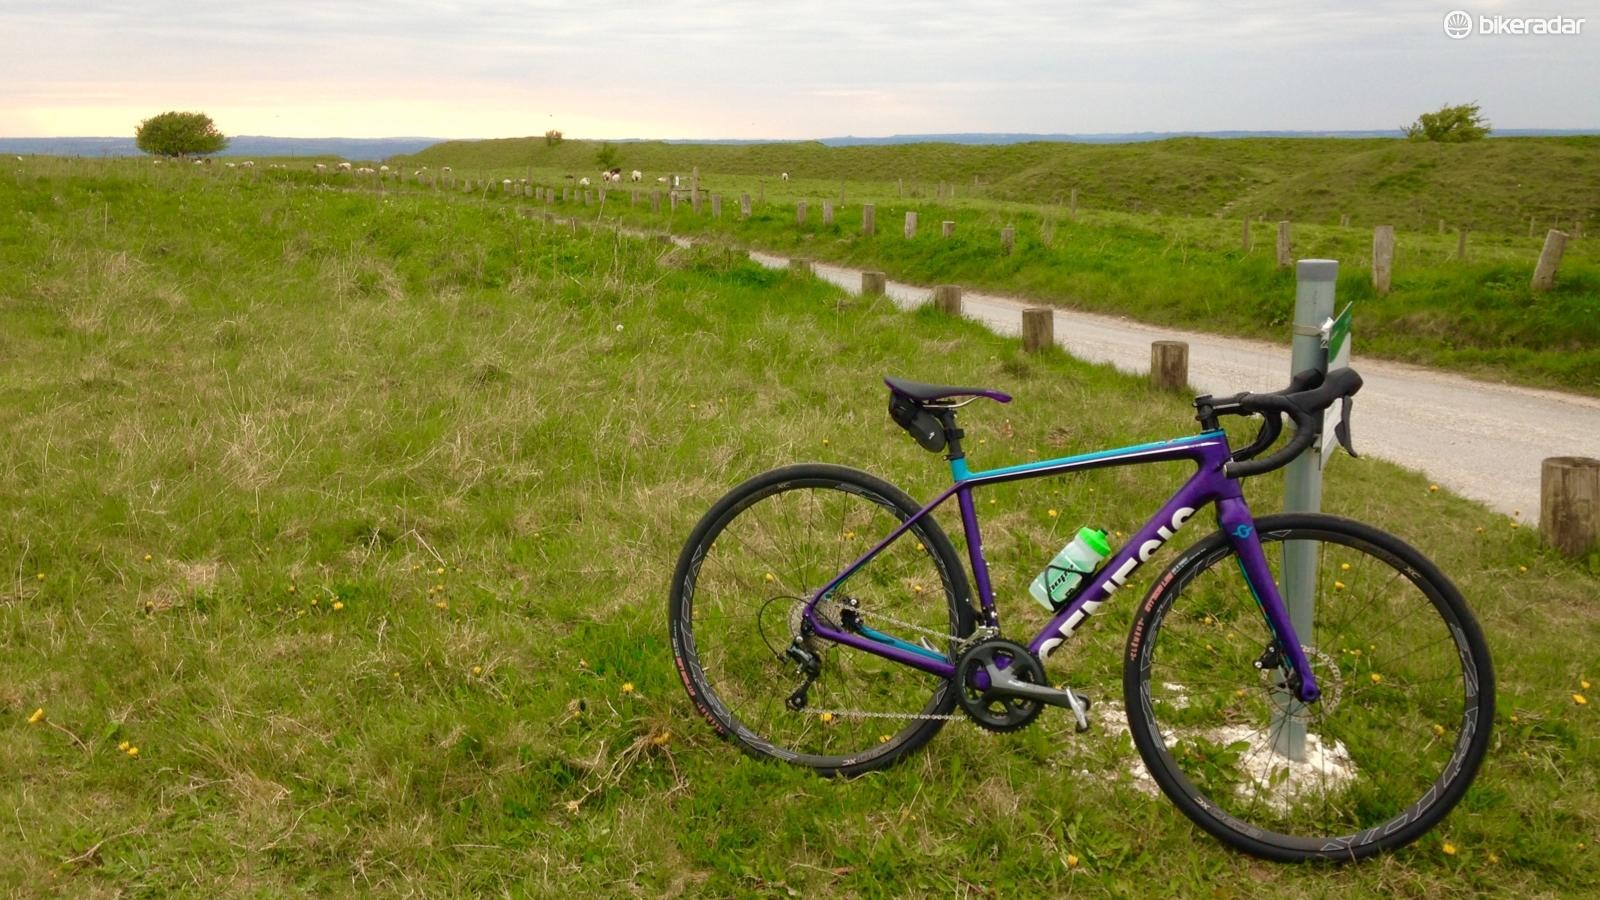 At the top of my regular training climb in Wiltshire